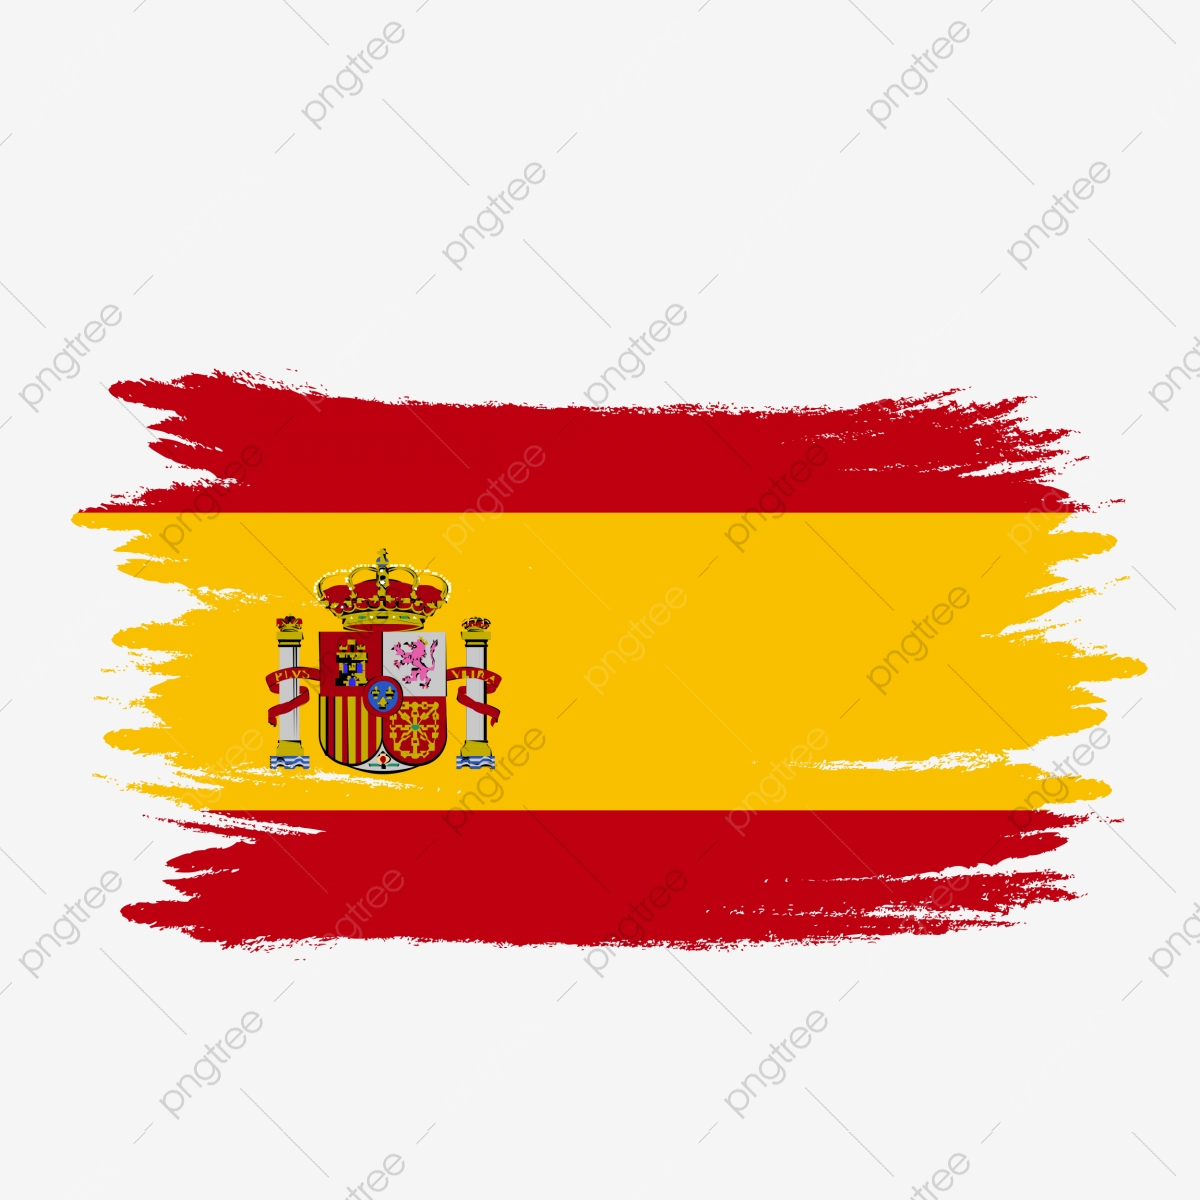 china flag png images vector and psd files free download on pngtree https pngtree com freepng spain flag transparent watercolor painted brush 5331199 html